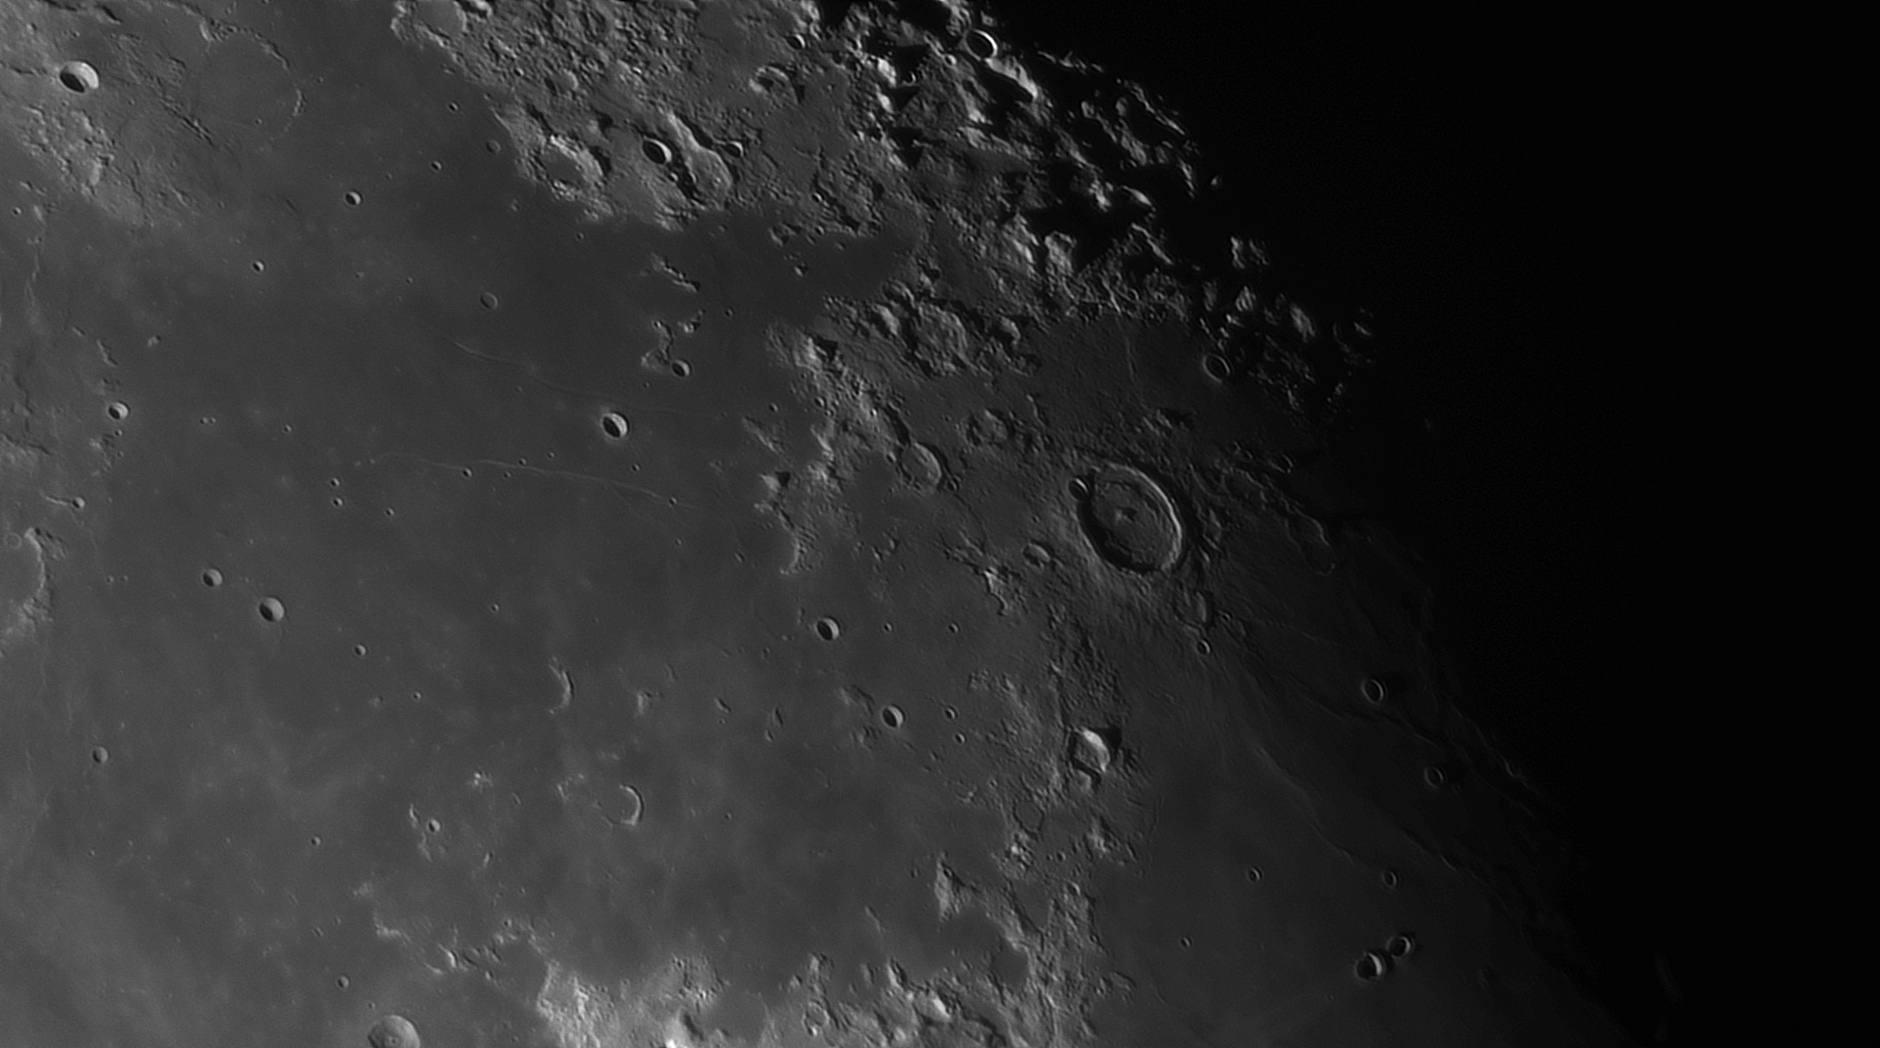 5e56c9e798b2f_Moon_055720_120220_ZWOASI290MM_IR_742nm_AS_P30_lapl4_ap993_AI_Deconvolution_10.jpg.509caf0da56b7efe702c41b5a82a28ae.jpg